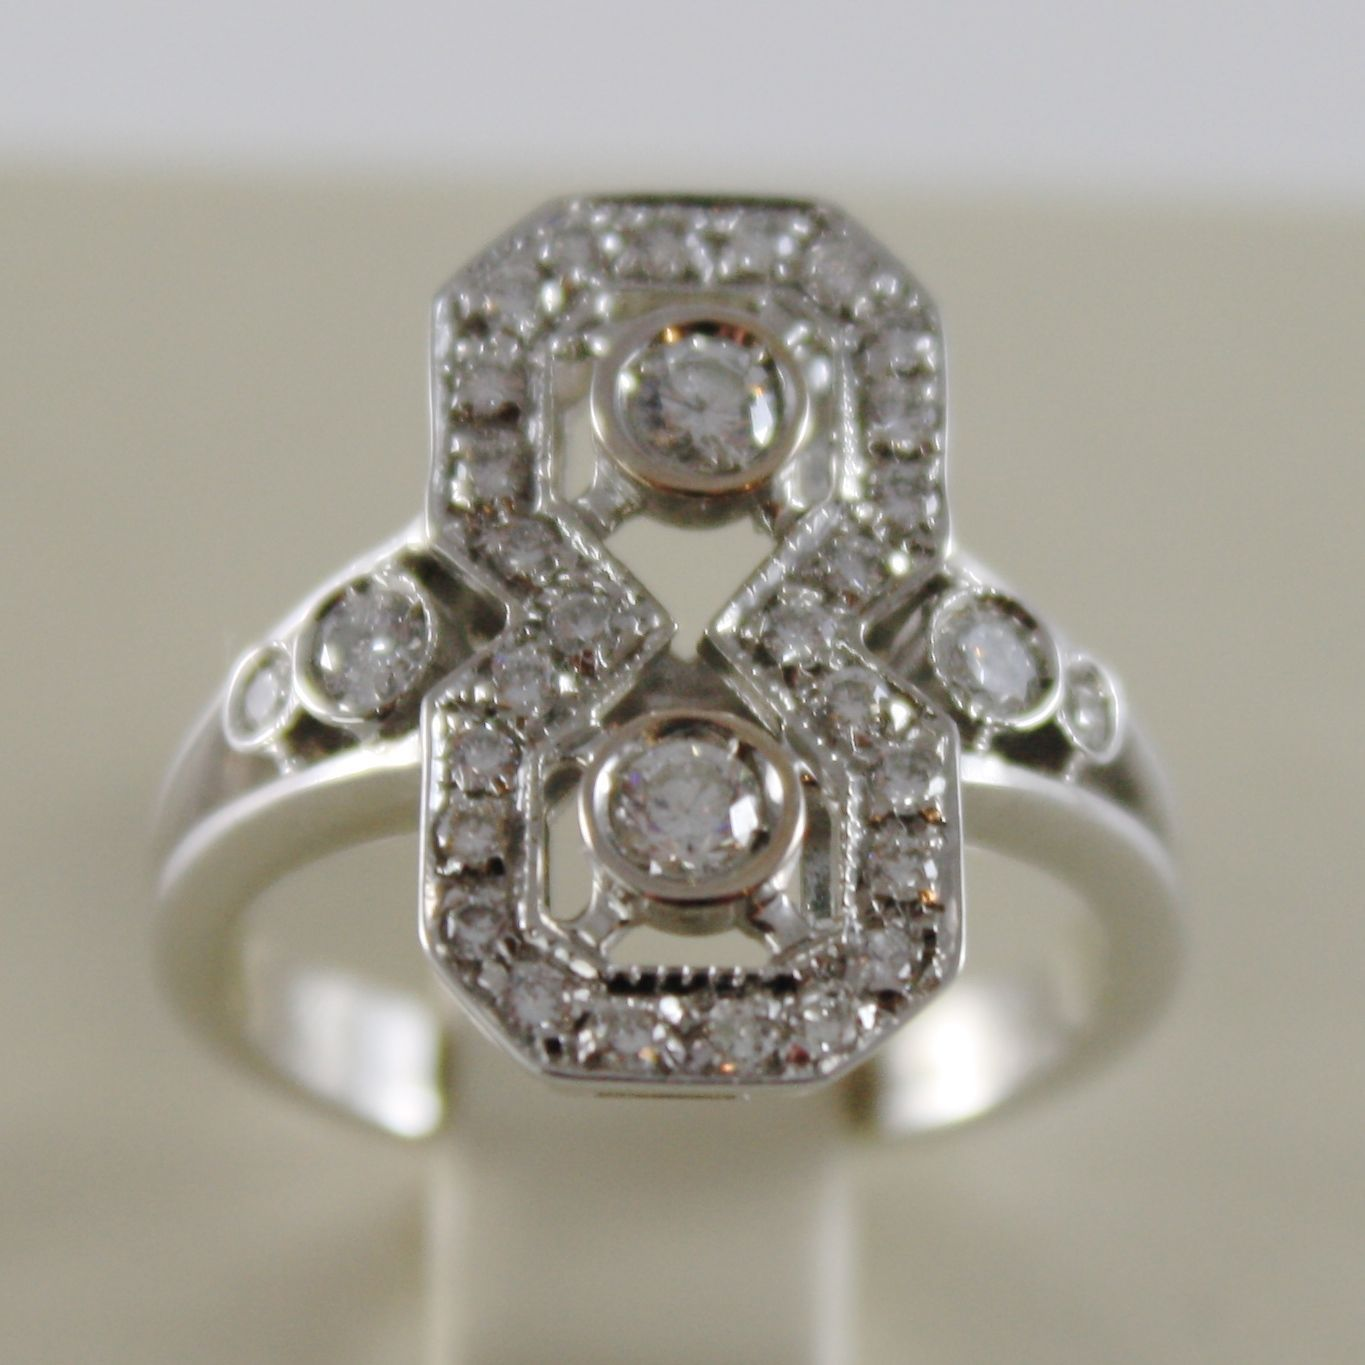 SOLID 18K WHITE GOLD BAND RING, DIAMONDS, VINTAGE VICTORIAN STYLE, MADE IN ITALY